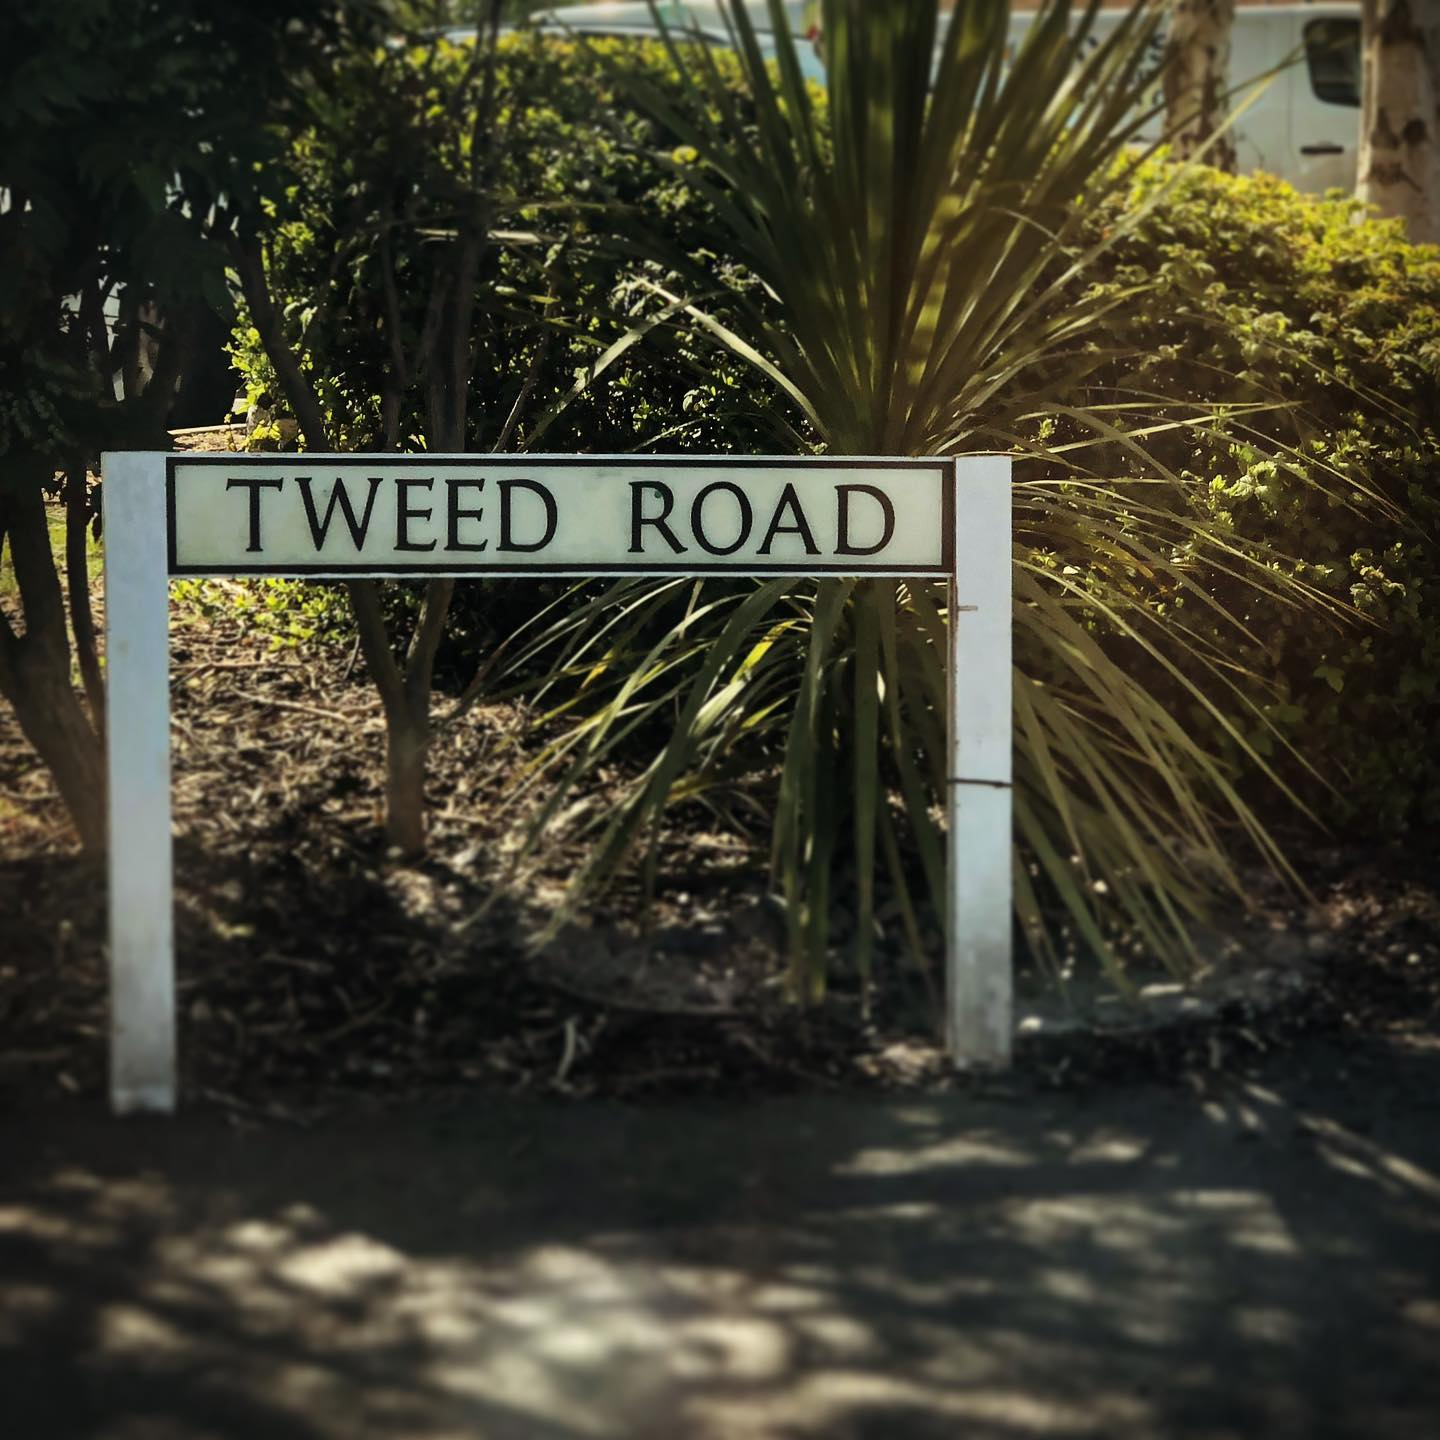 What a great road name #gingerandtweed